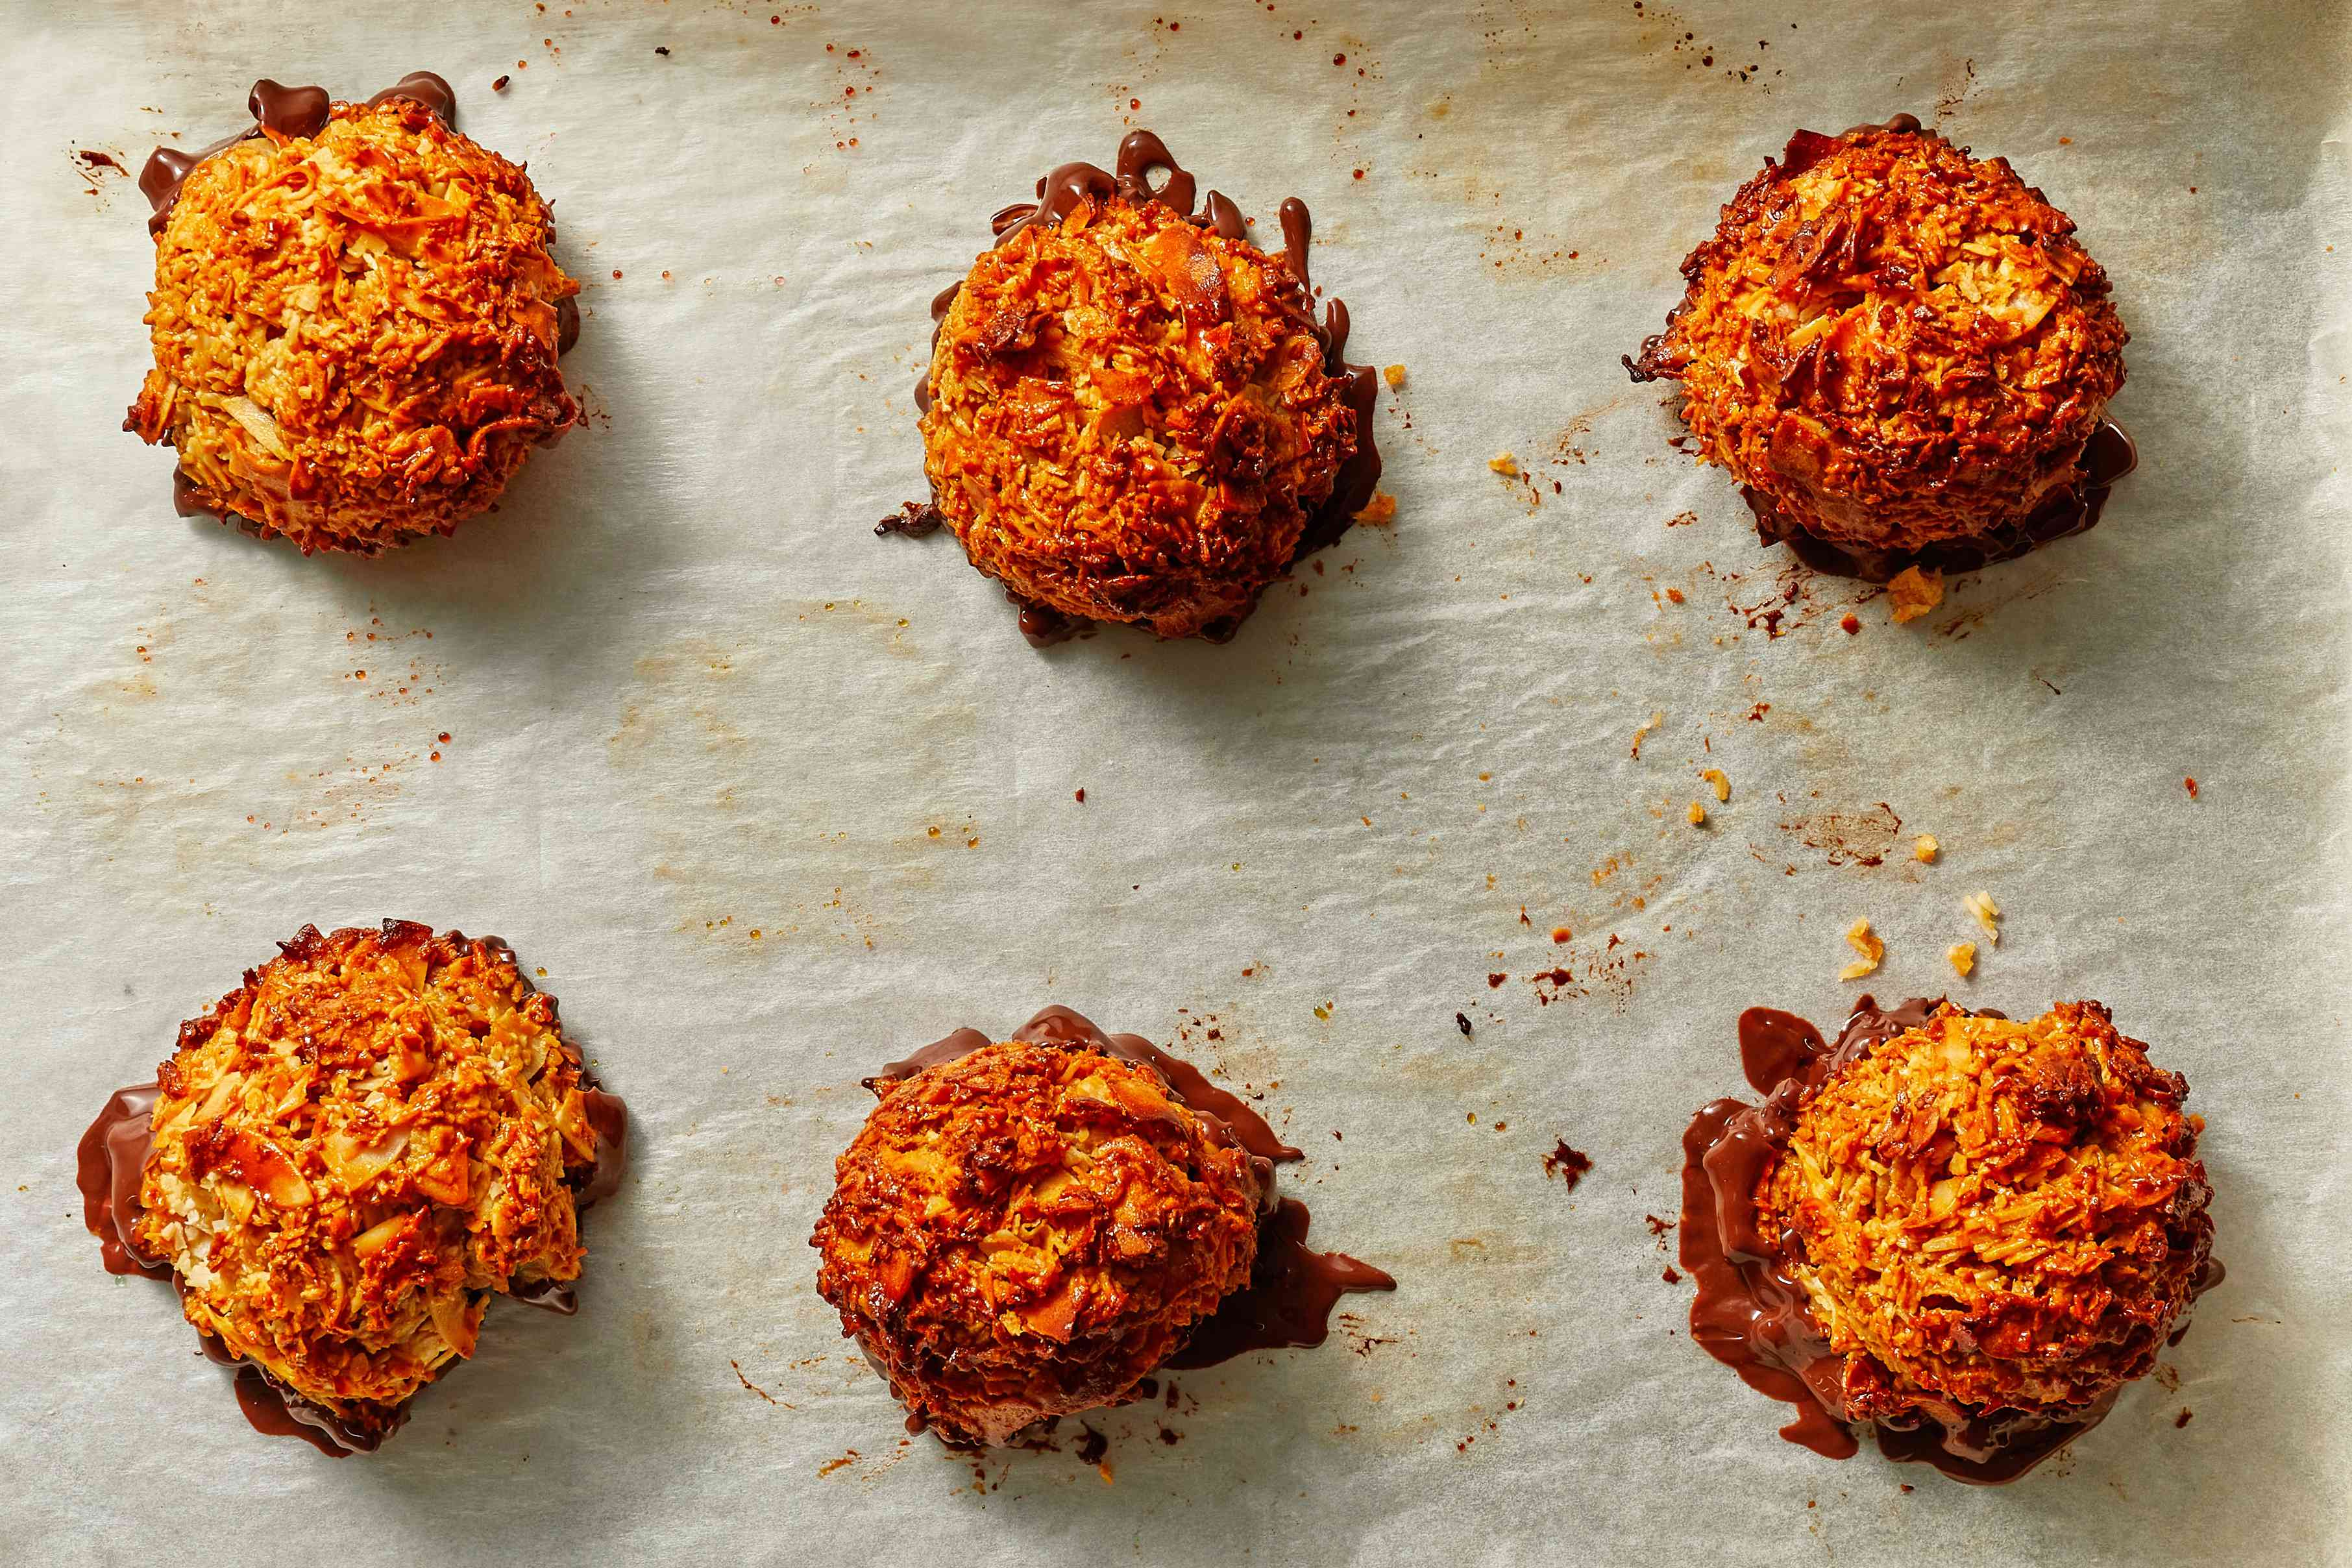 Cocadas - Coconut Macaroons With Dulce de Leche and Chocolate